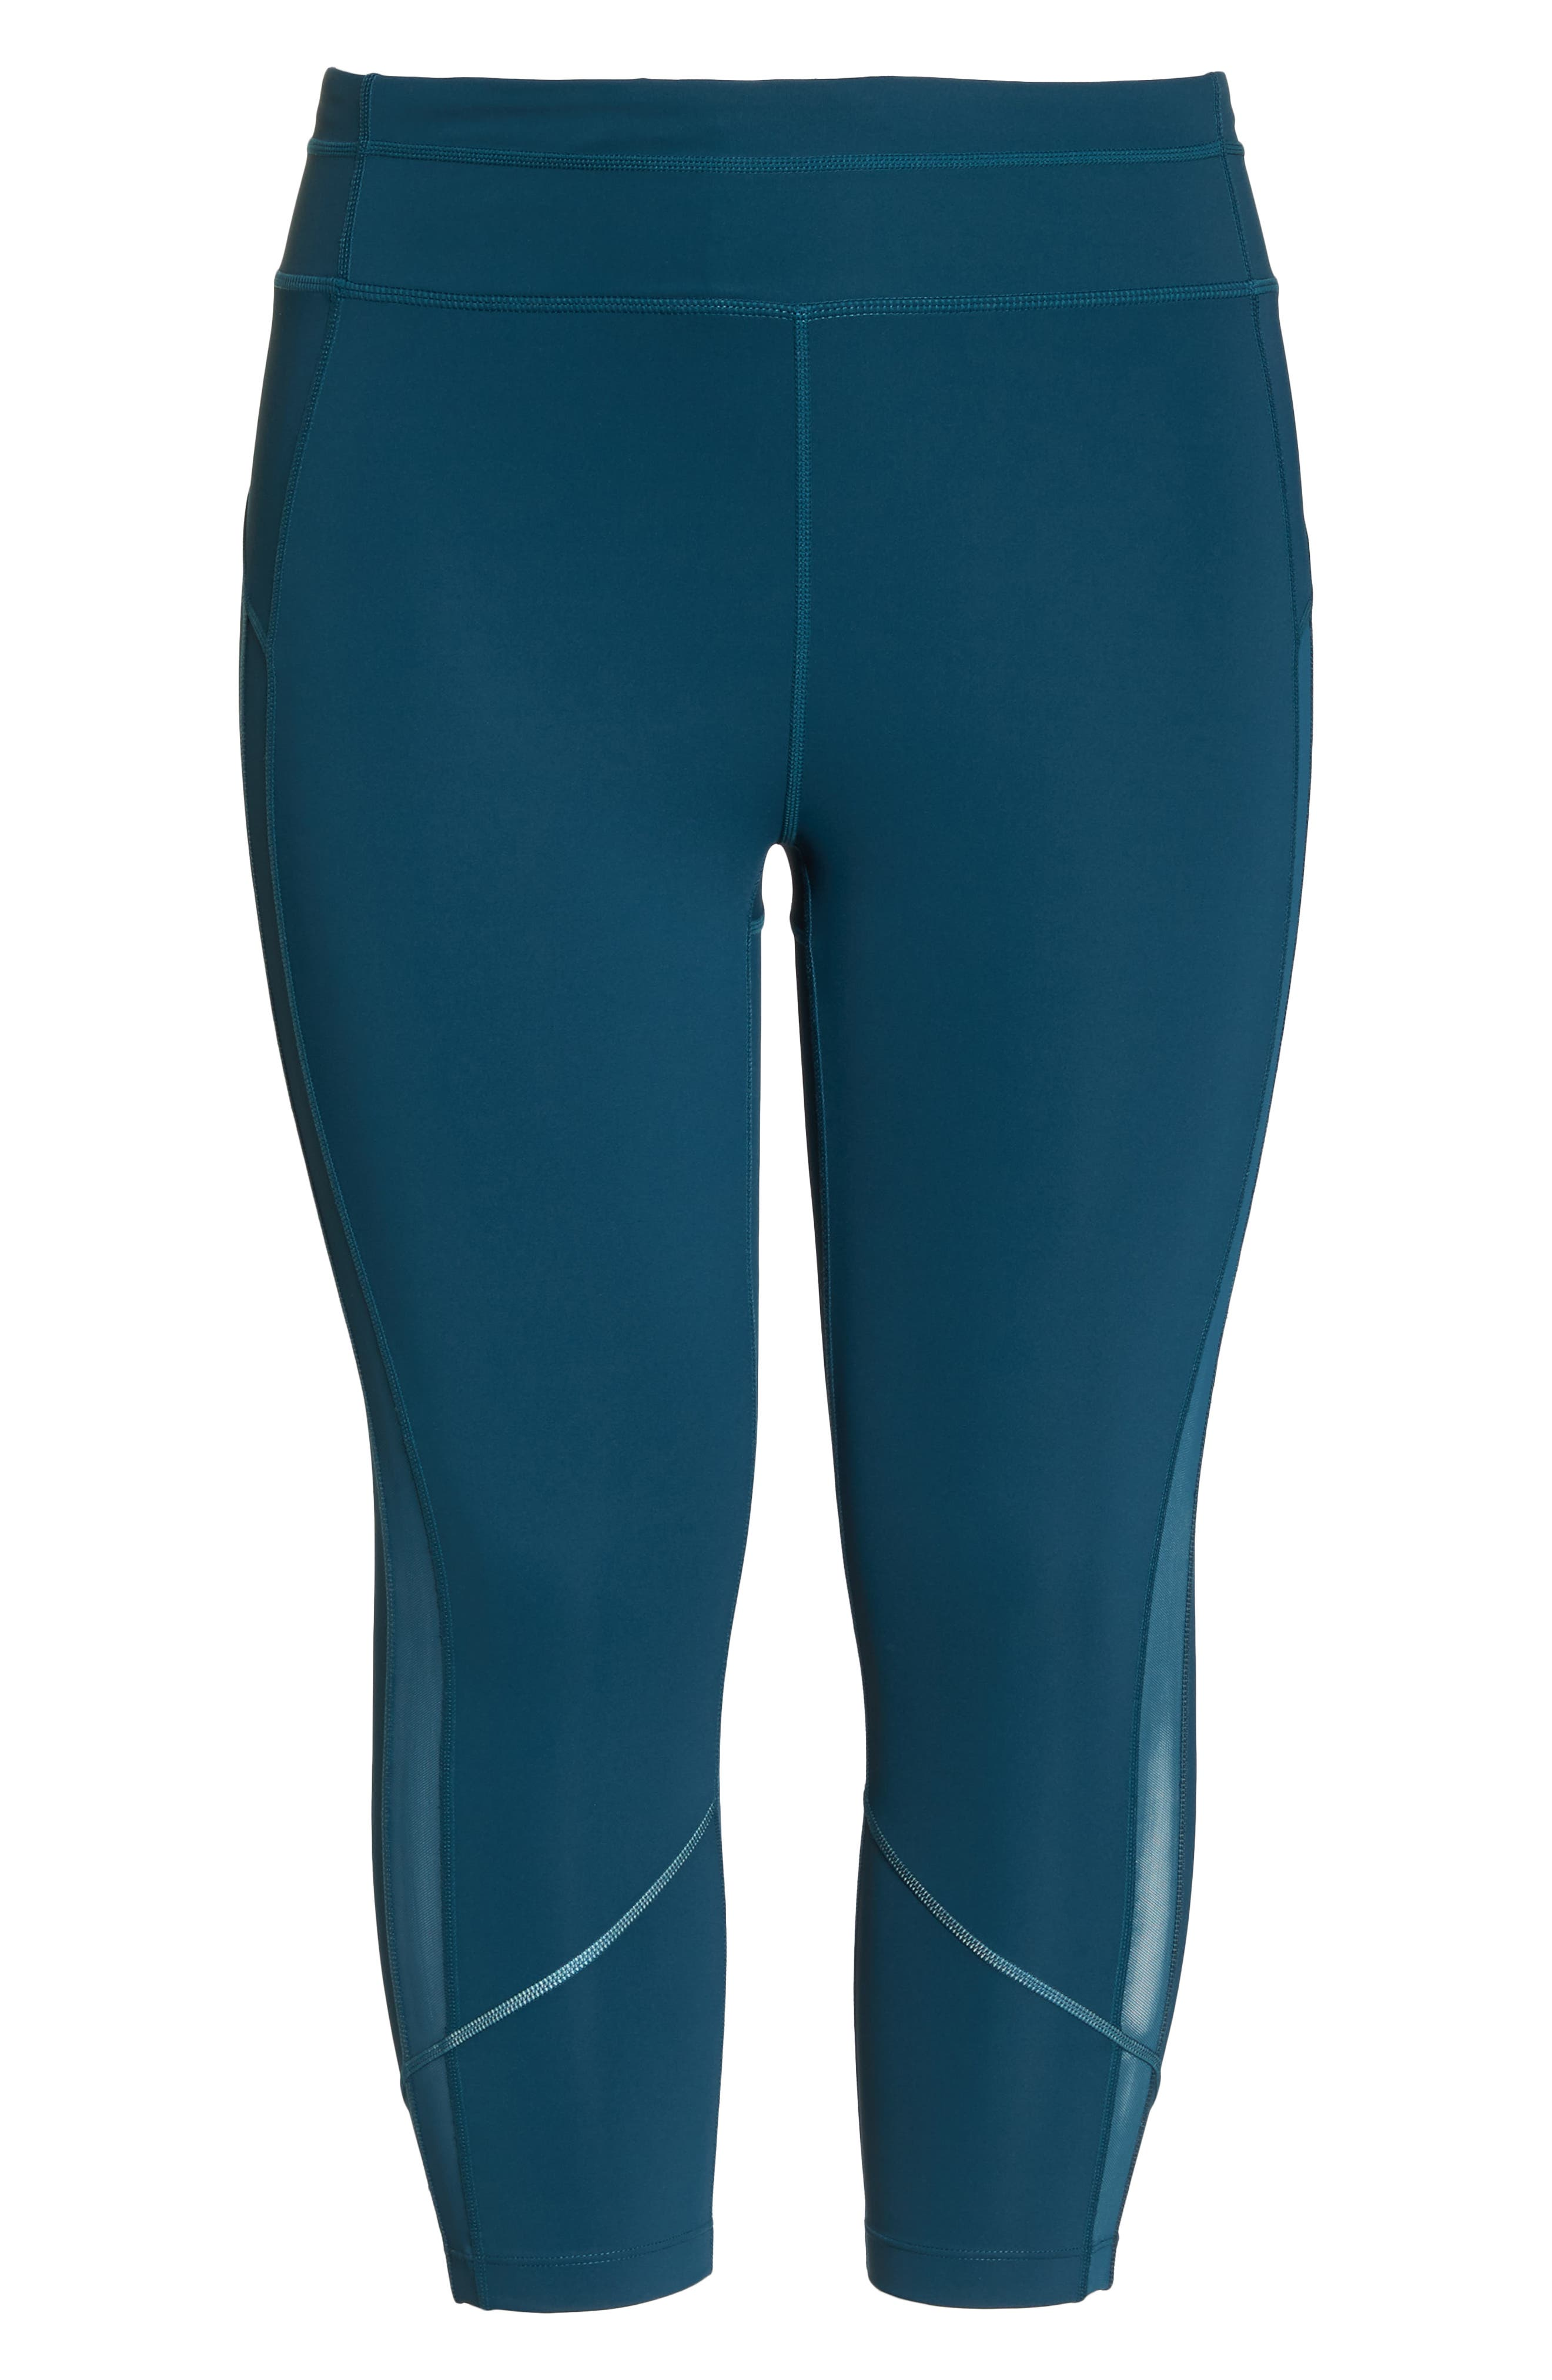 ZELLA,                             All In High Rise Crop Tights,                             Alternate thumbnail 7, color,                             449